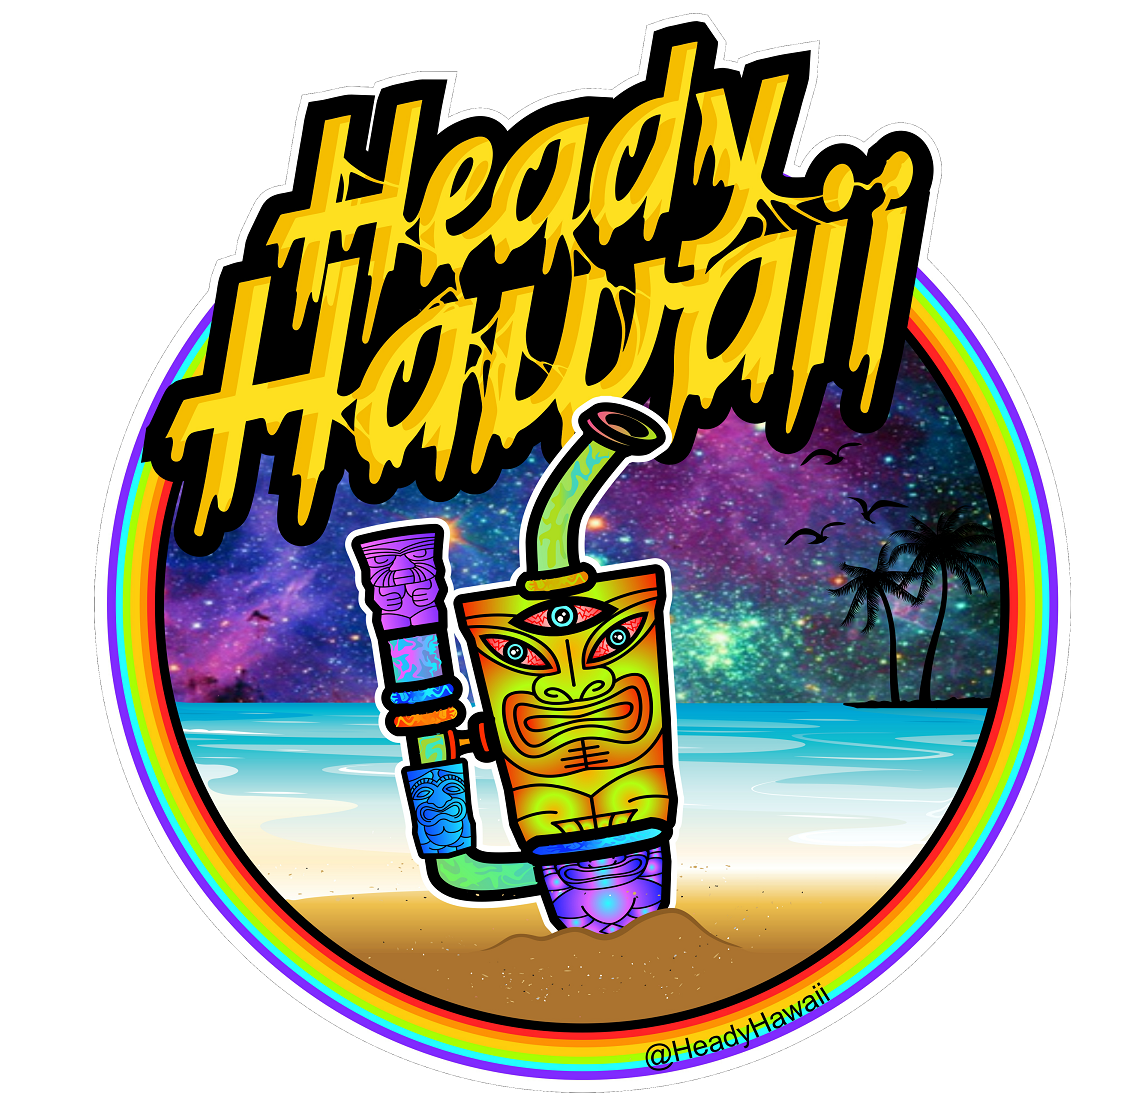 Heady Hawaii - Online Glass Gallery